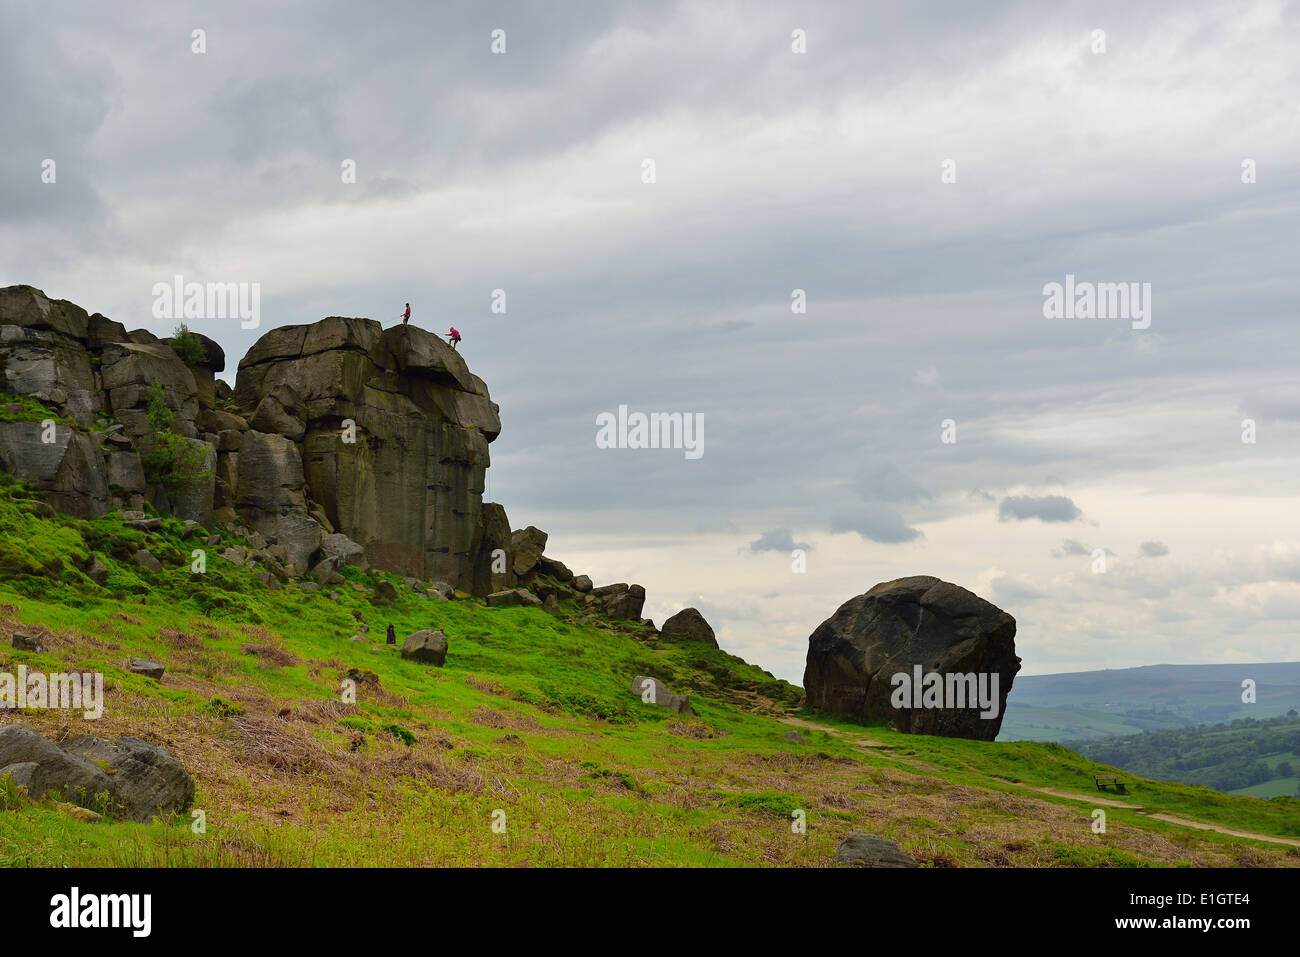 Abseiling down the Cow and Calf rock face on Ilkley Moor West Yorkshire England UK Stock Photo